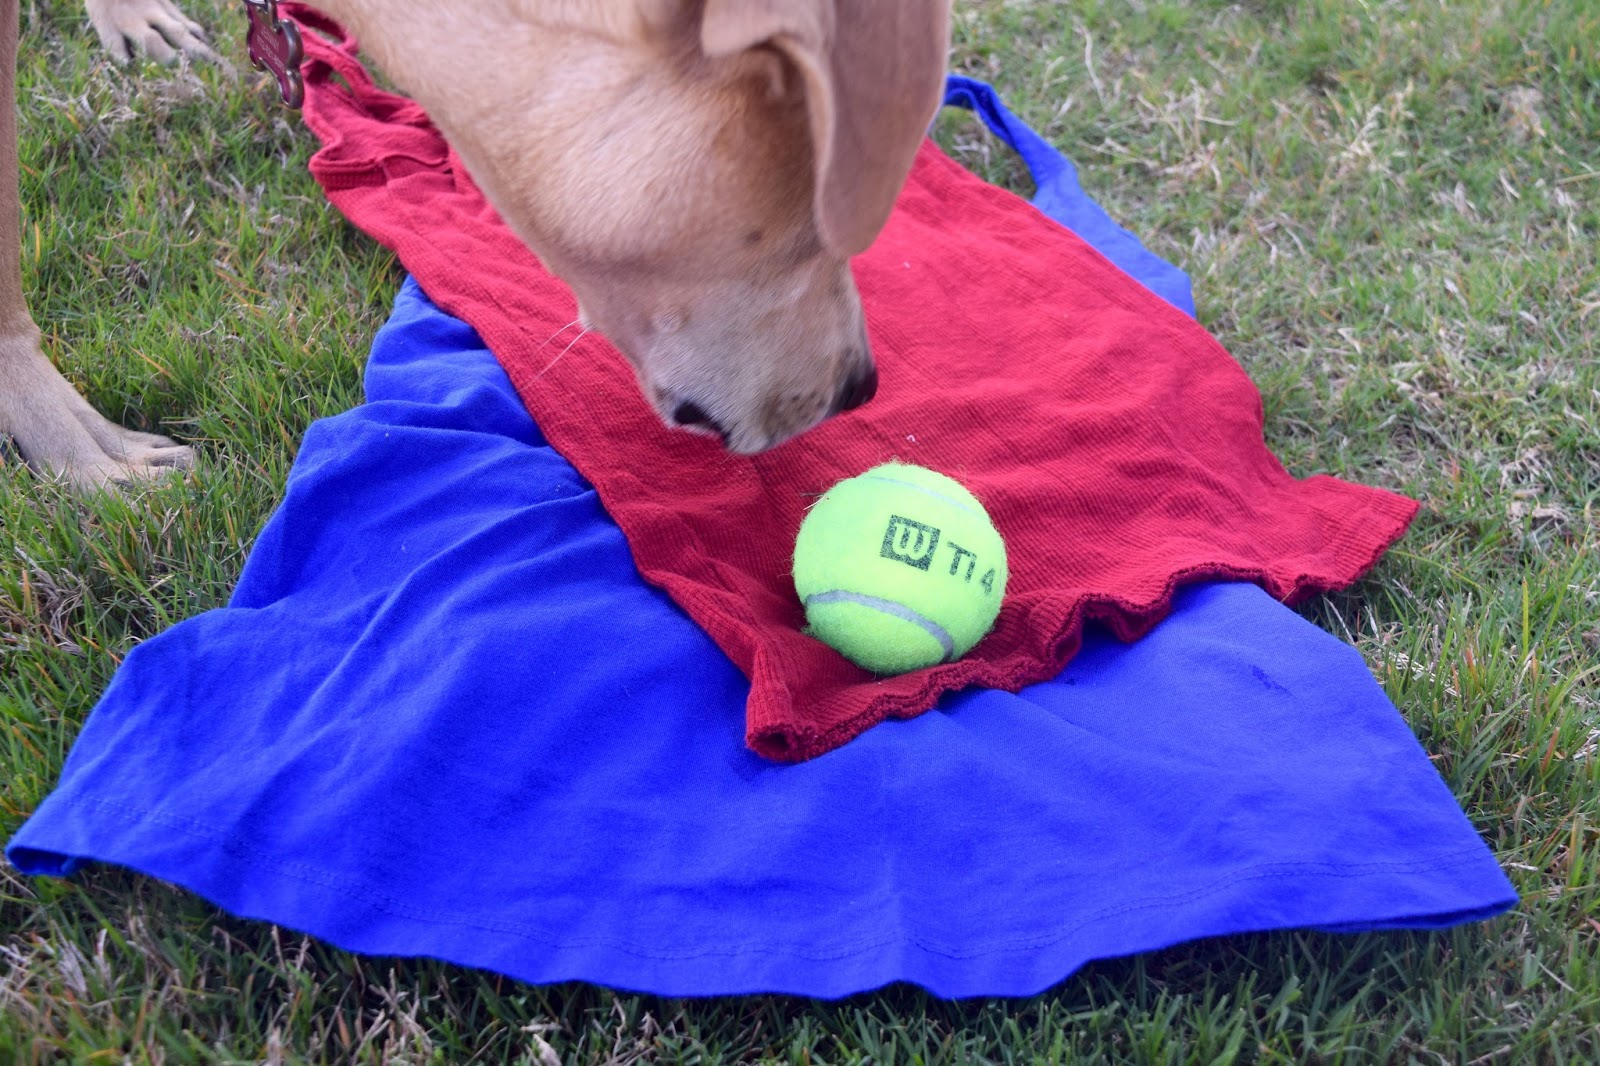 Diy t shirt dog toy for summer with my best girl anchors for T shirt dog toy